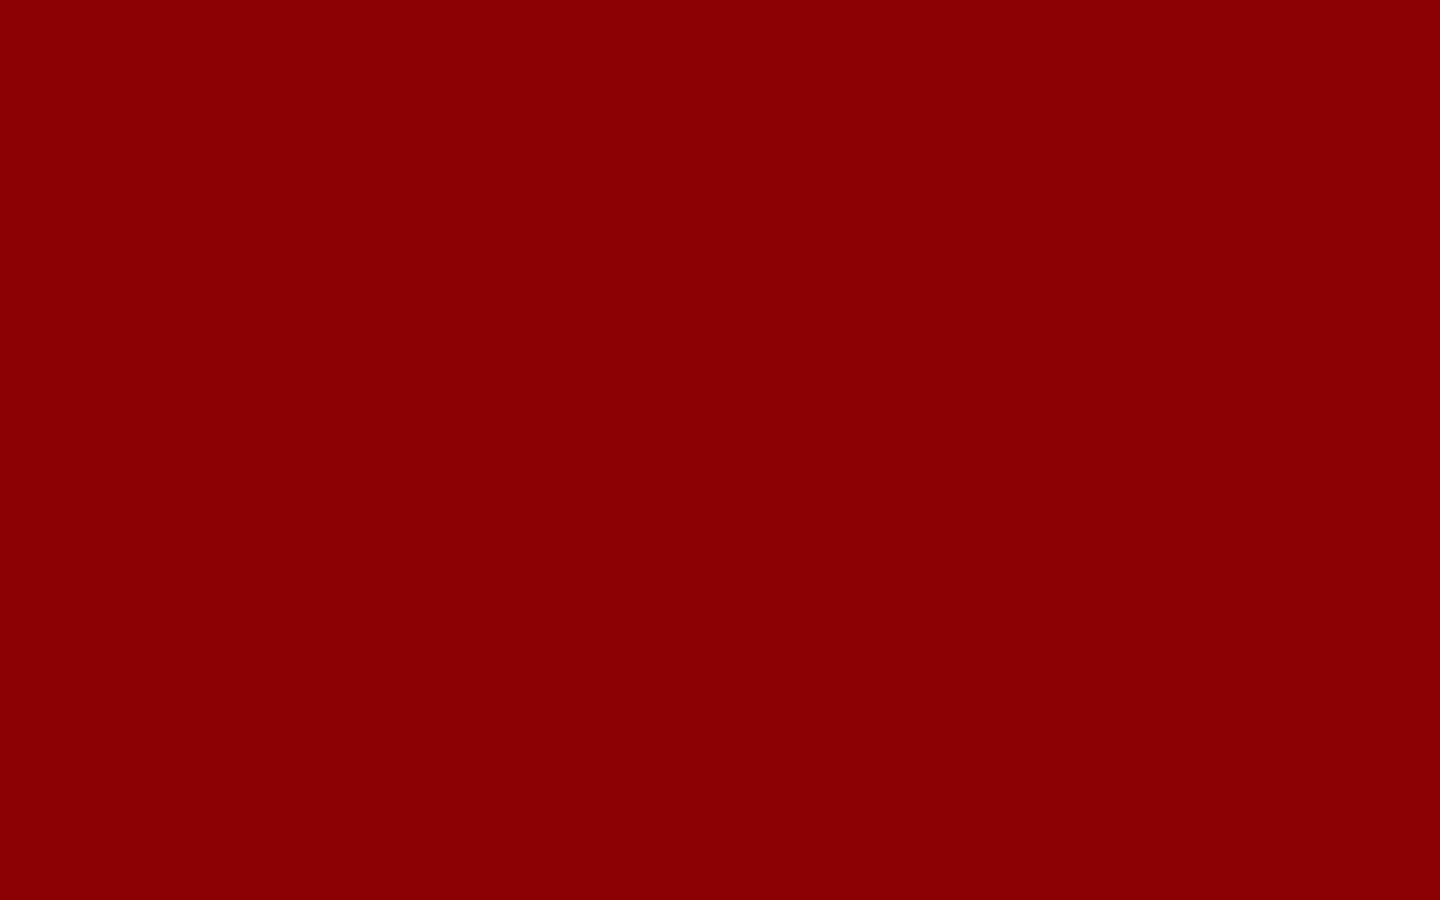 1440x900 Dark Red Solid Color Background